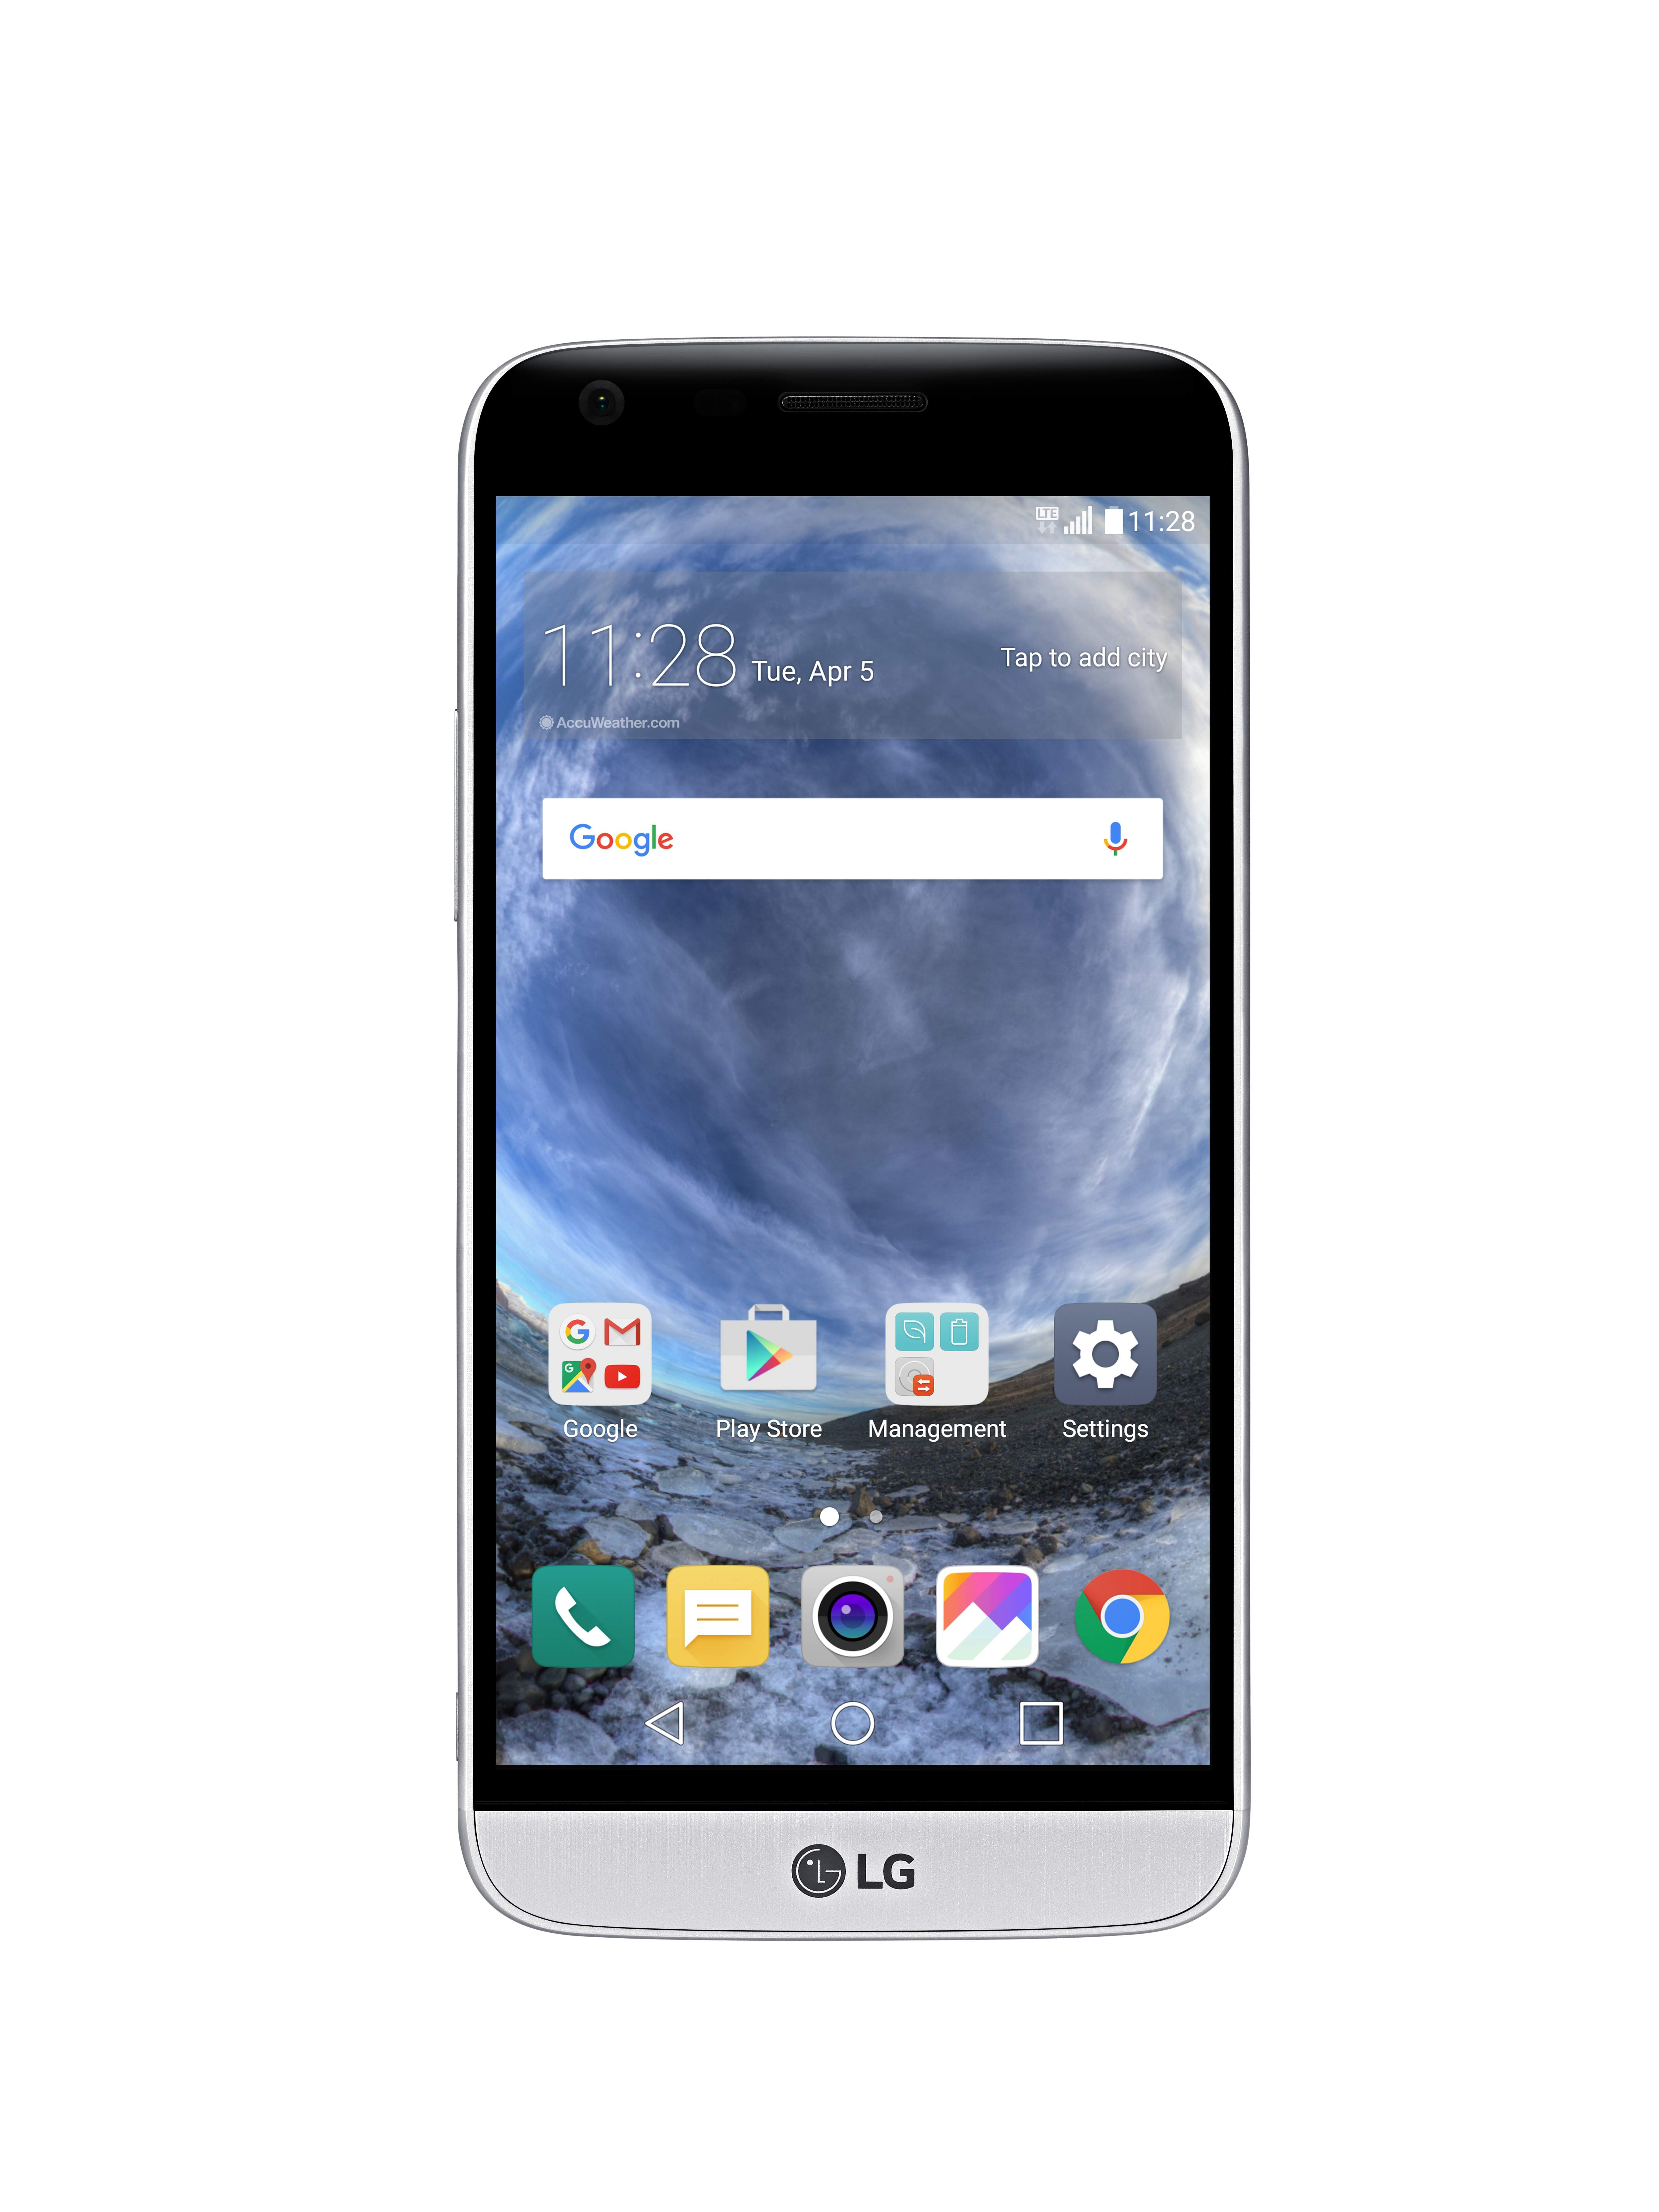 The front view of the LG G5 in Silver with the new 360-degree VR wallpaper displaying clouds